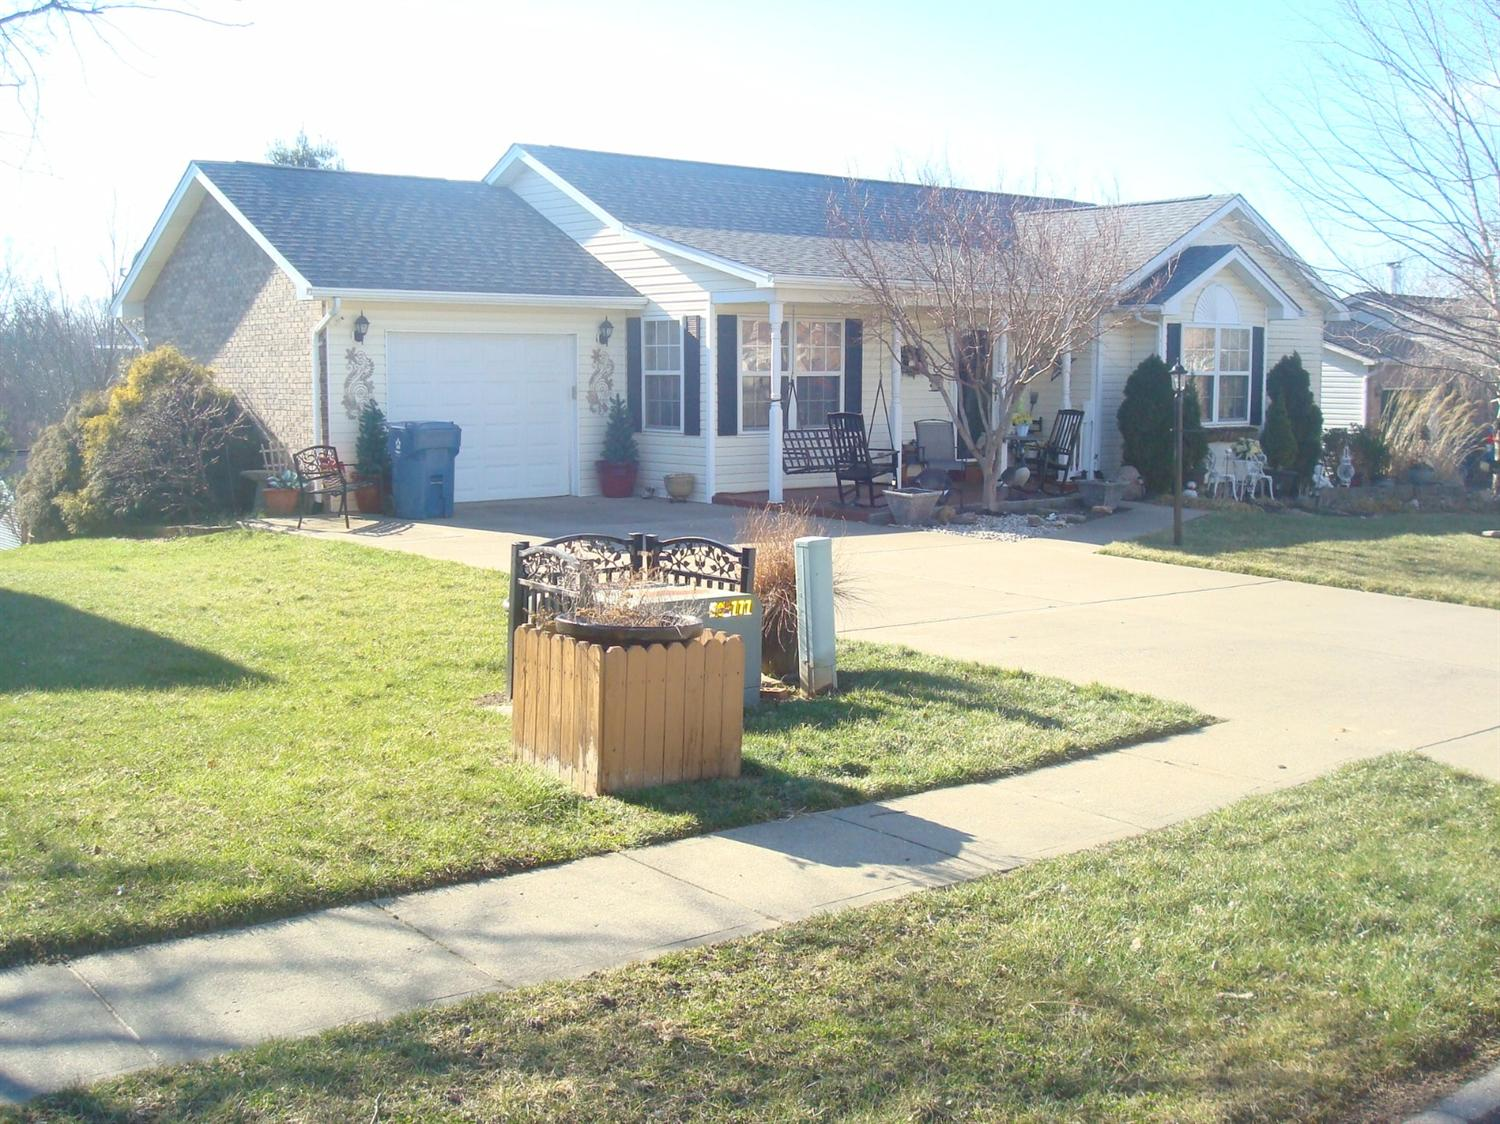 Photo 1 for 130 Barley Cir Crittenden, KY 41030